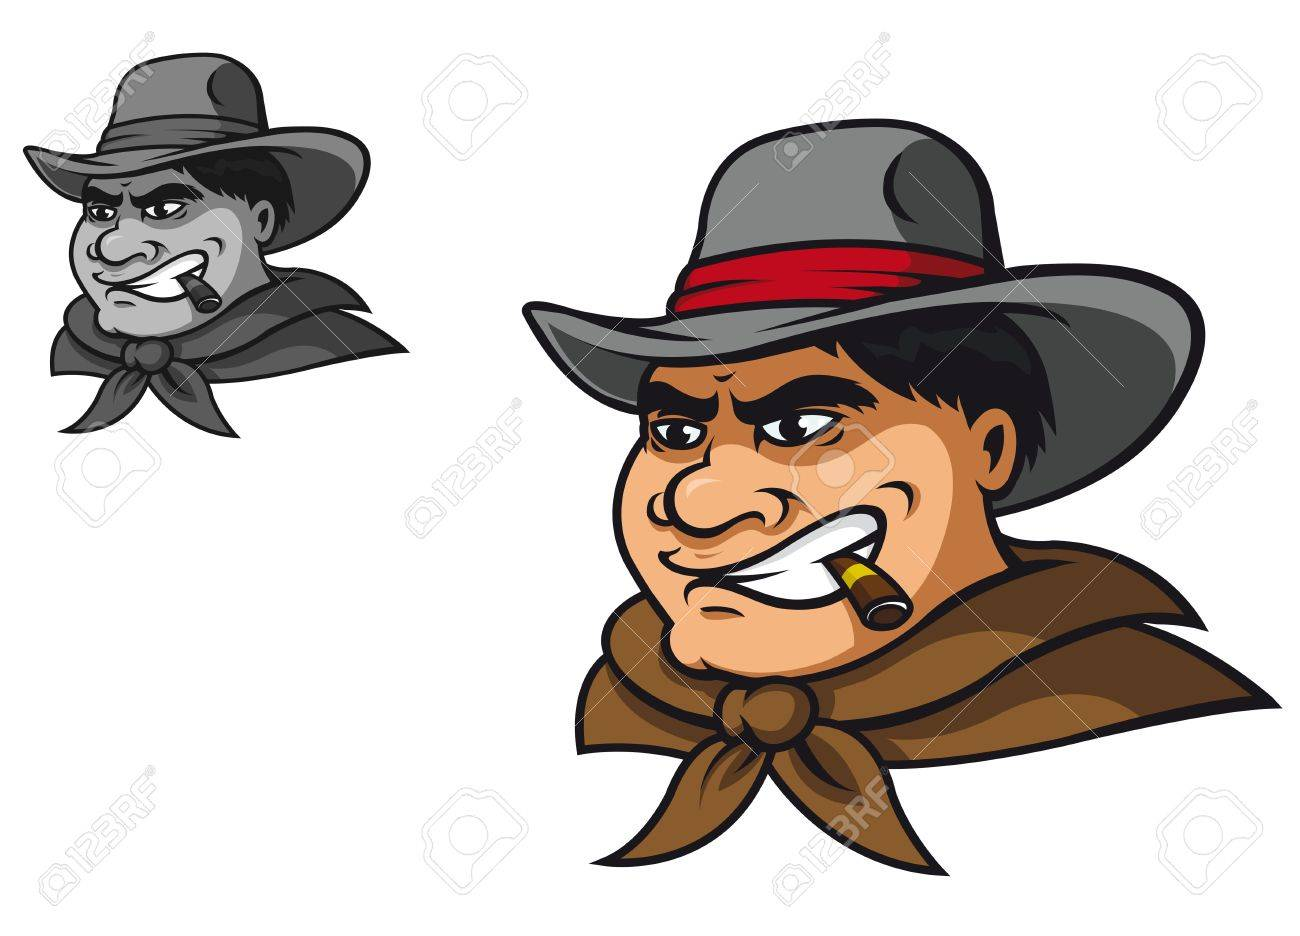 Western cowboy in cartoon style for mascot Stock Vector - 14933229